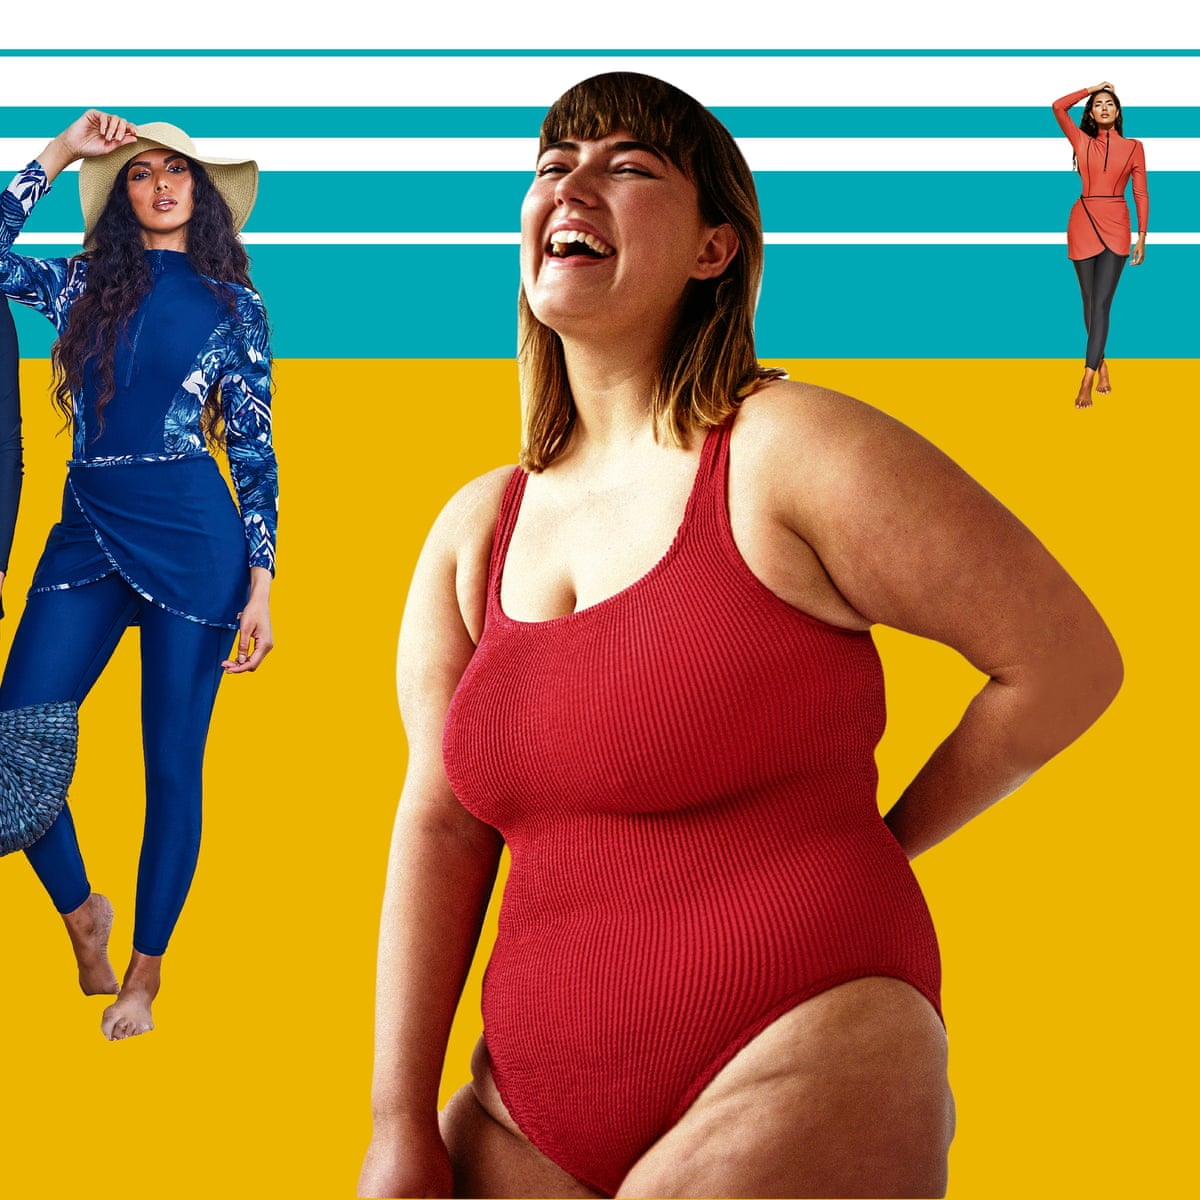 The Models Have Bellies Hips And Thighs That Jiggle The Rise Of Body Positive Swimwear Women The Guardian